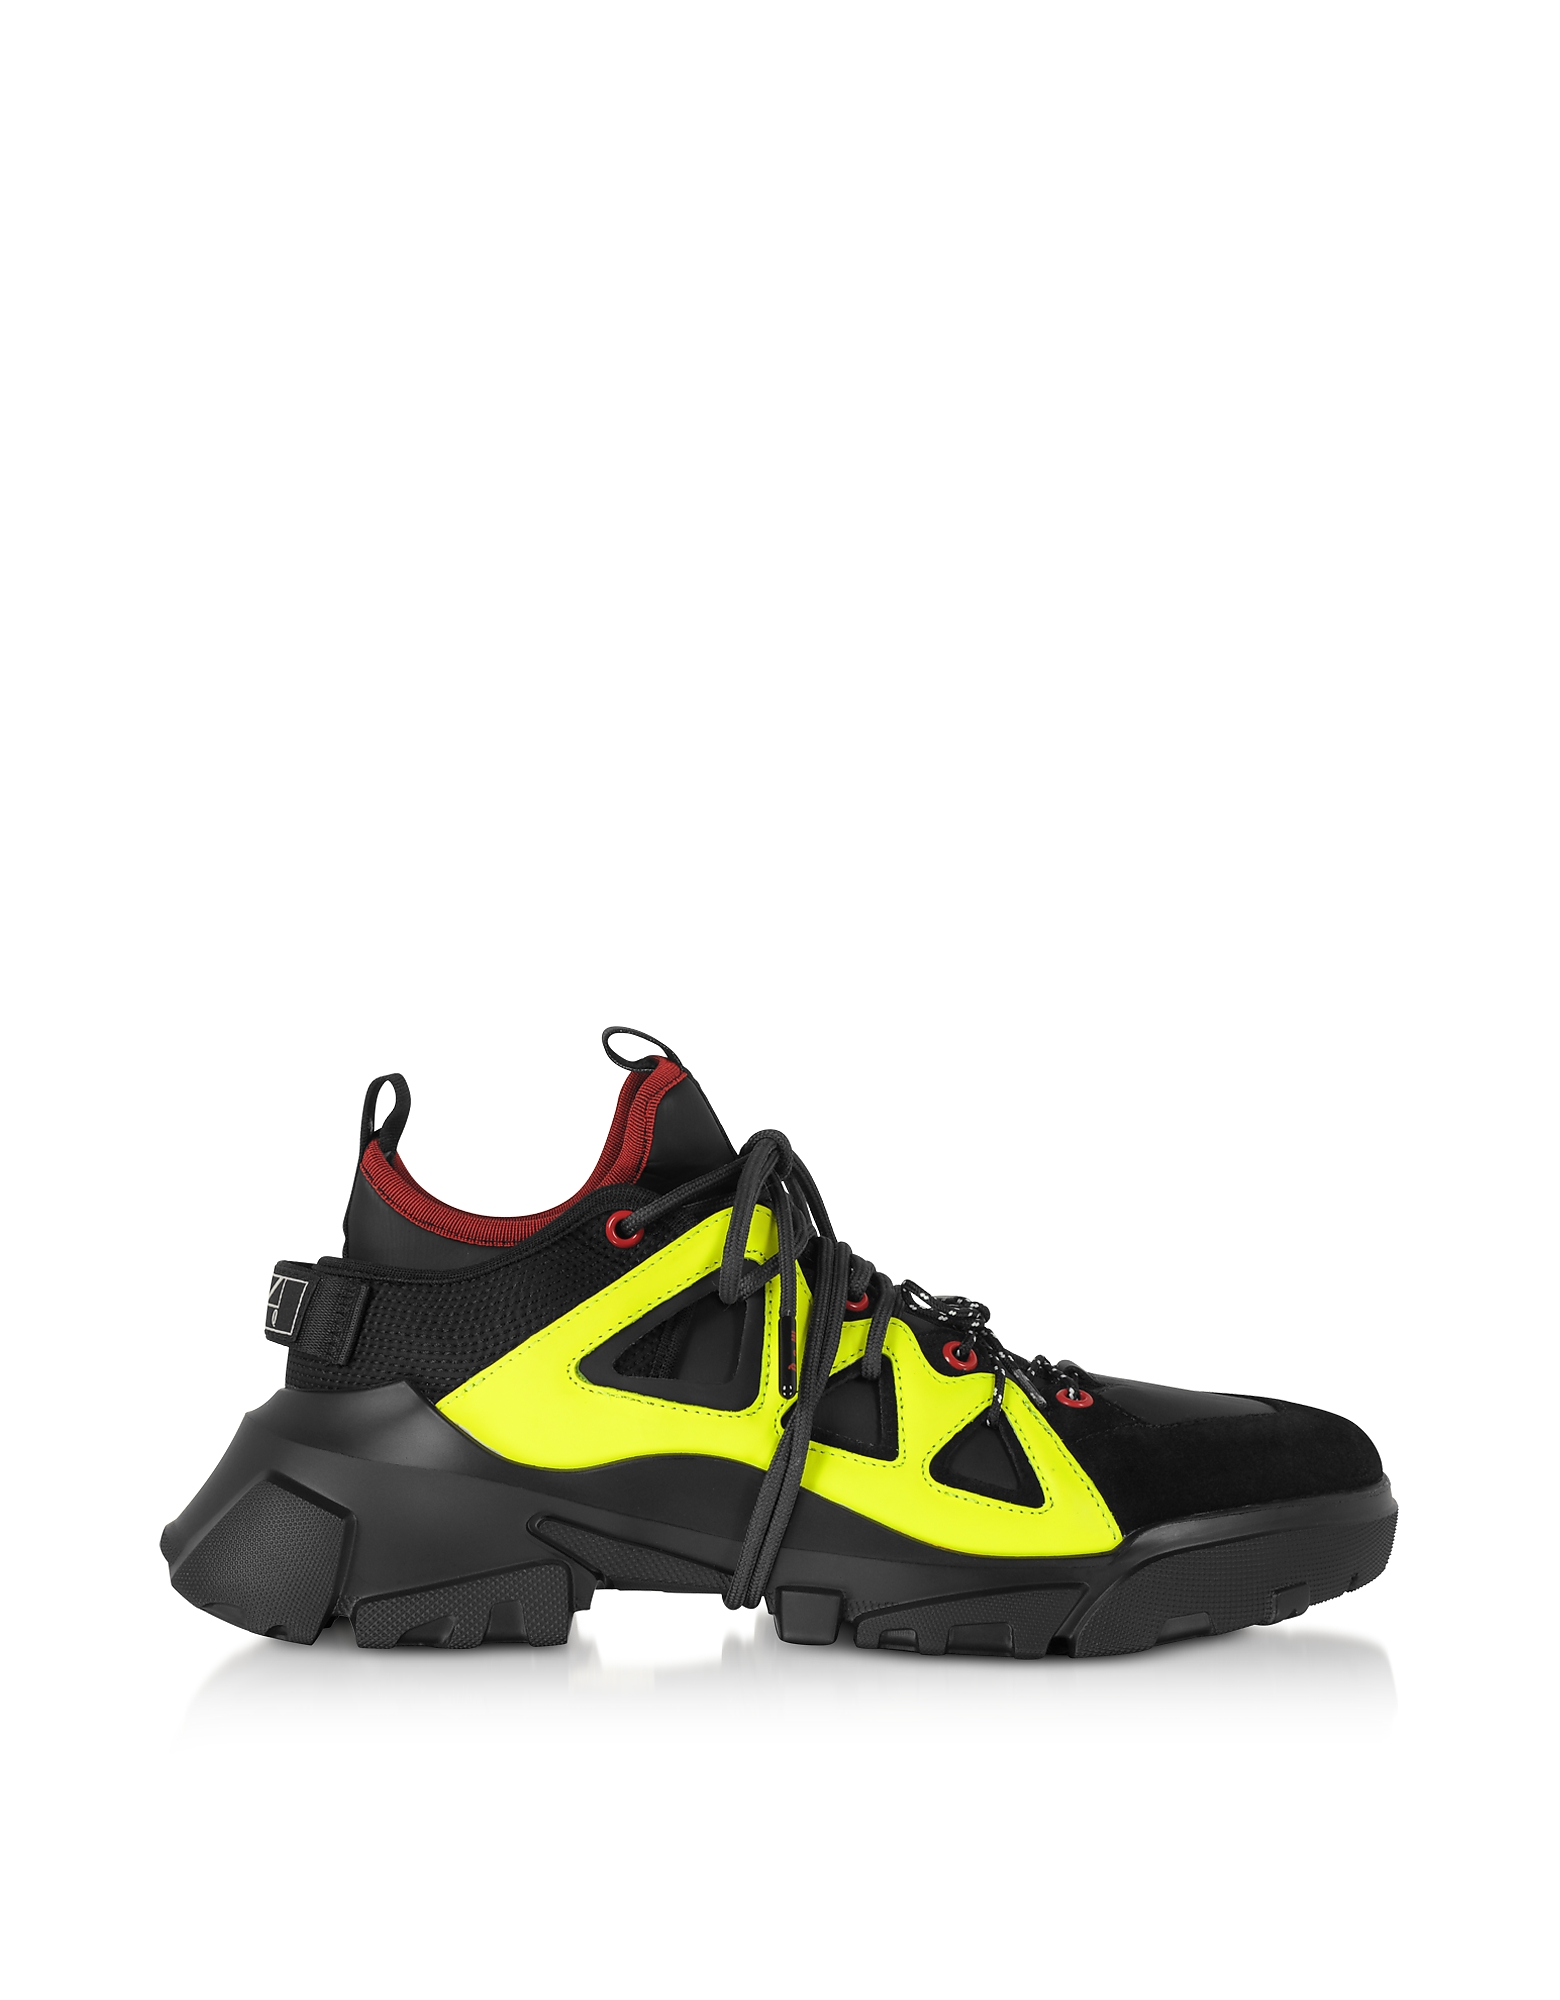 McQ Alexander McQueen Designer Shoes, Orbyt Mid Black Calf Leather and Fabric Men's Sneakers